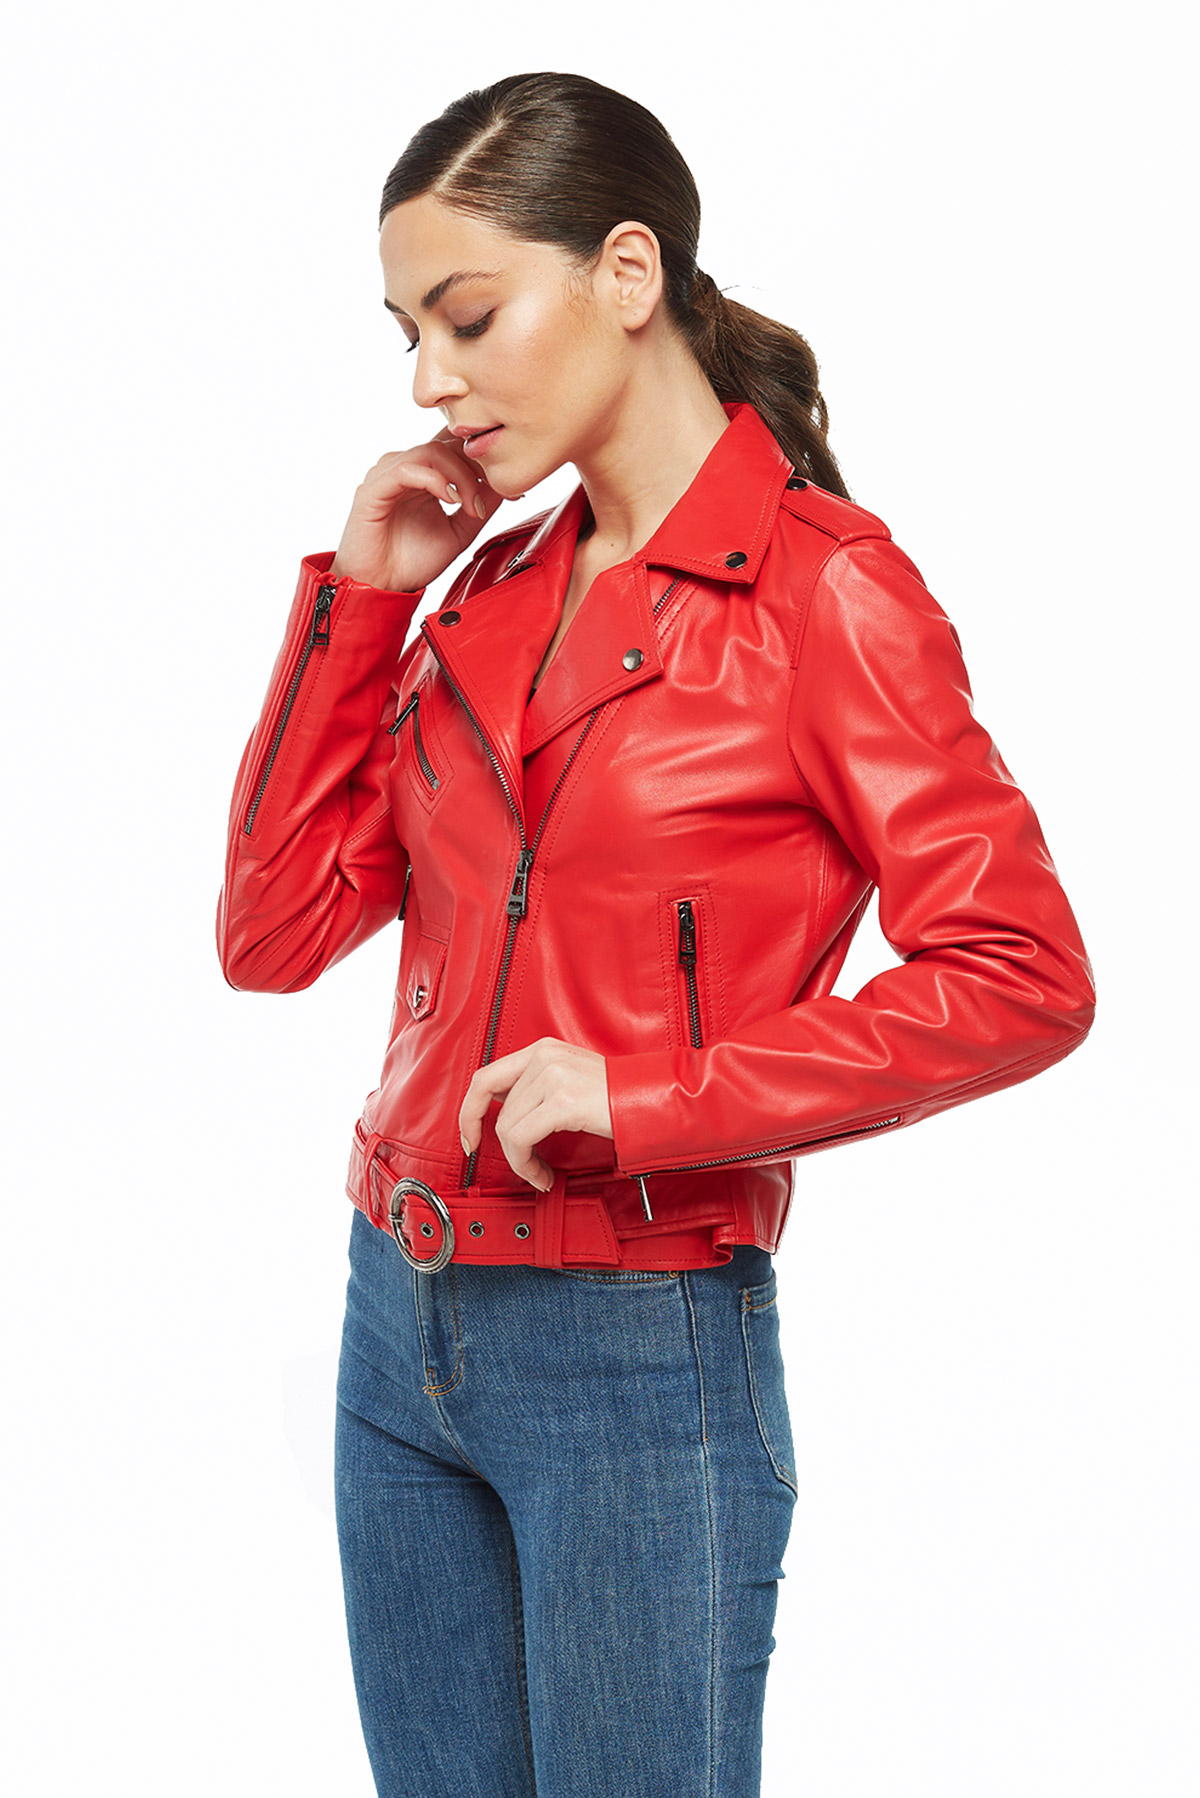 paul smith red jacket